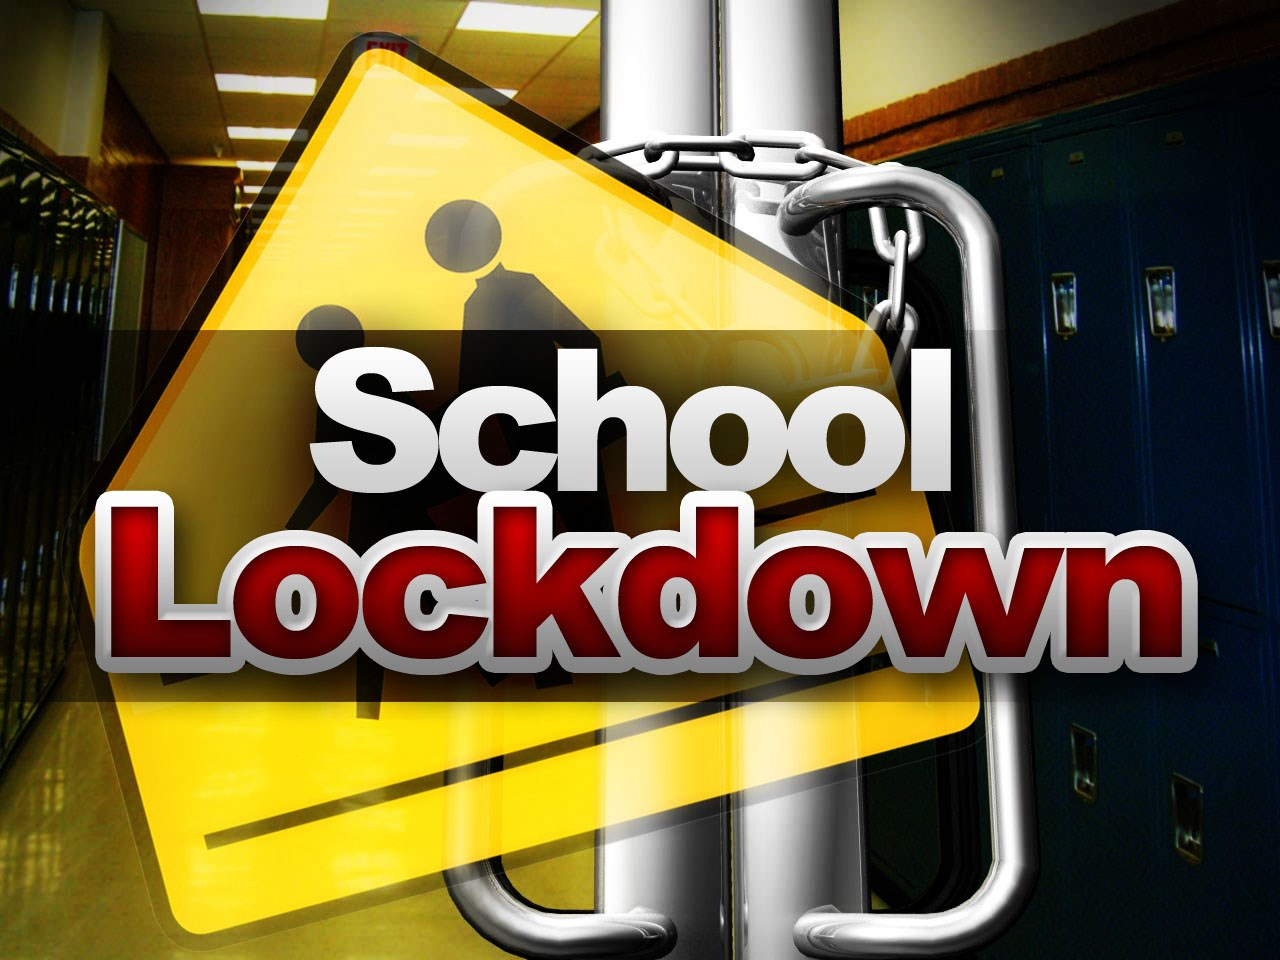 UPDATE: Lockdown lifted at Hilton Head Island School for the